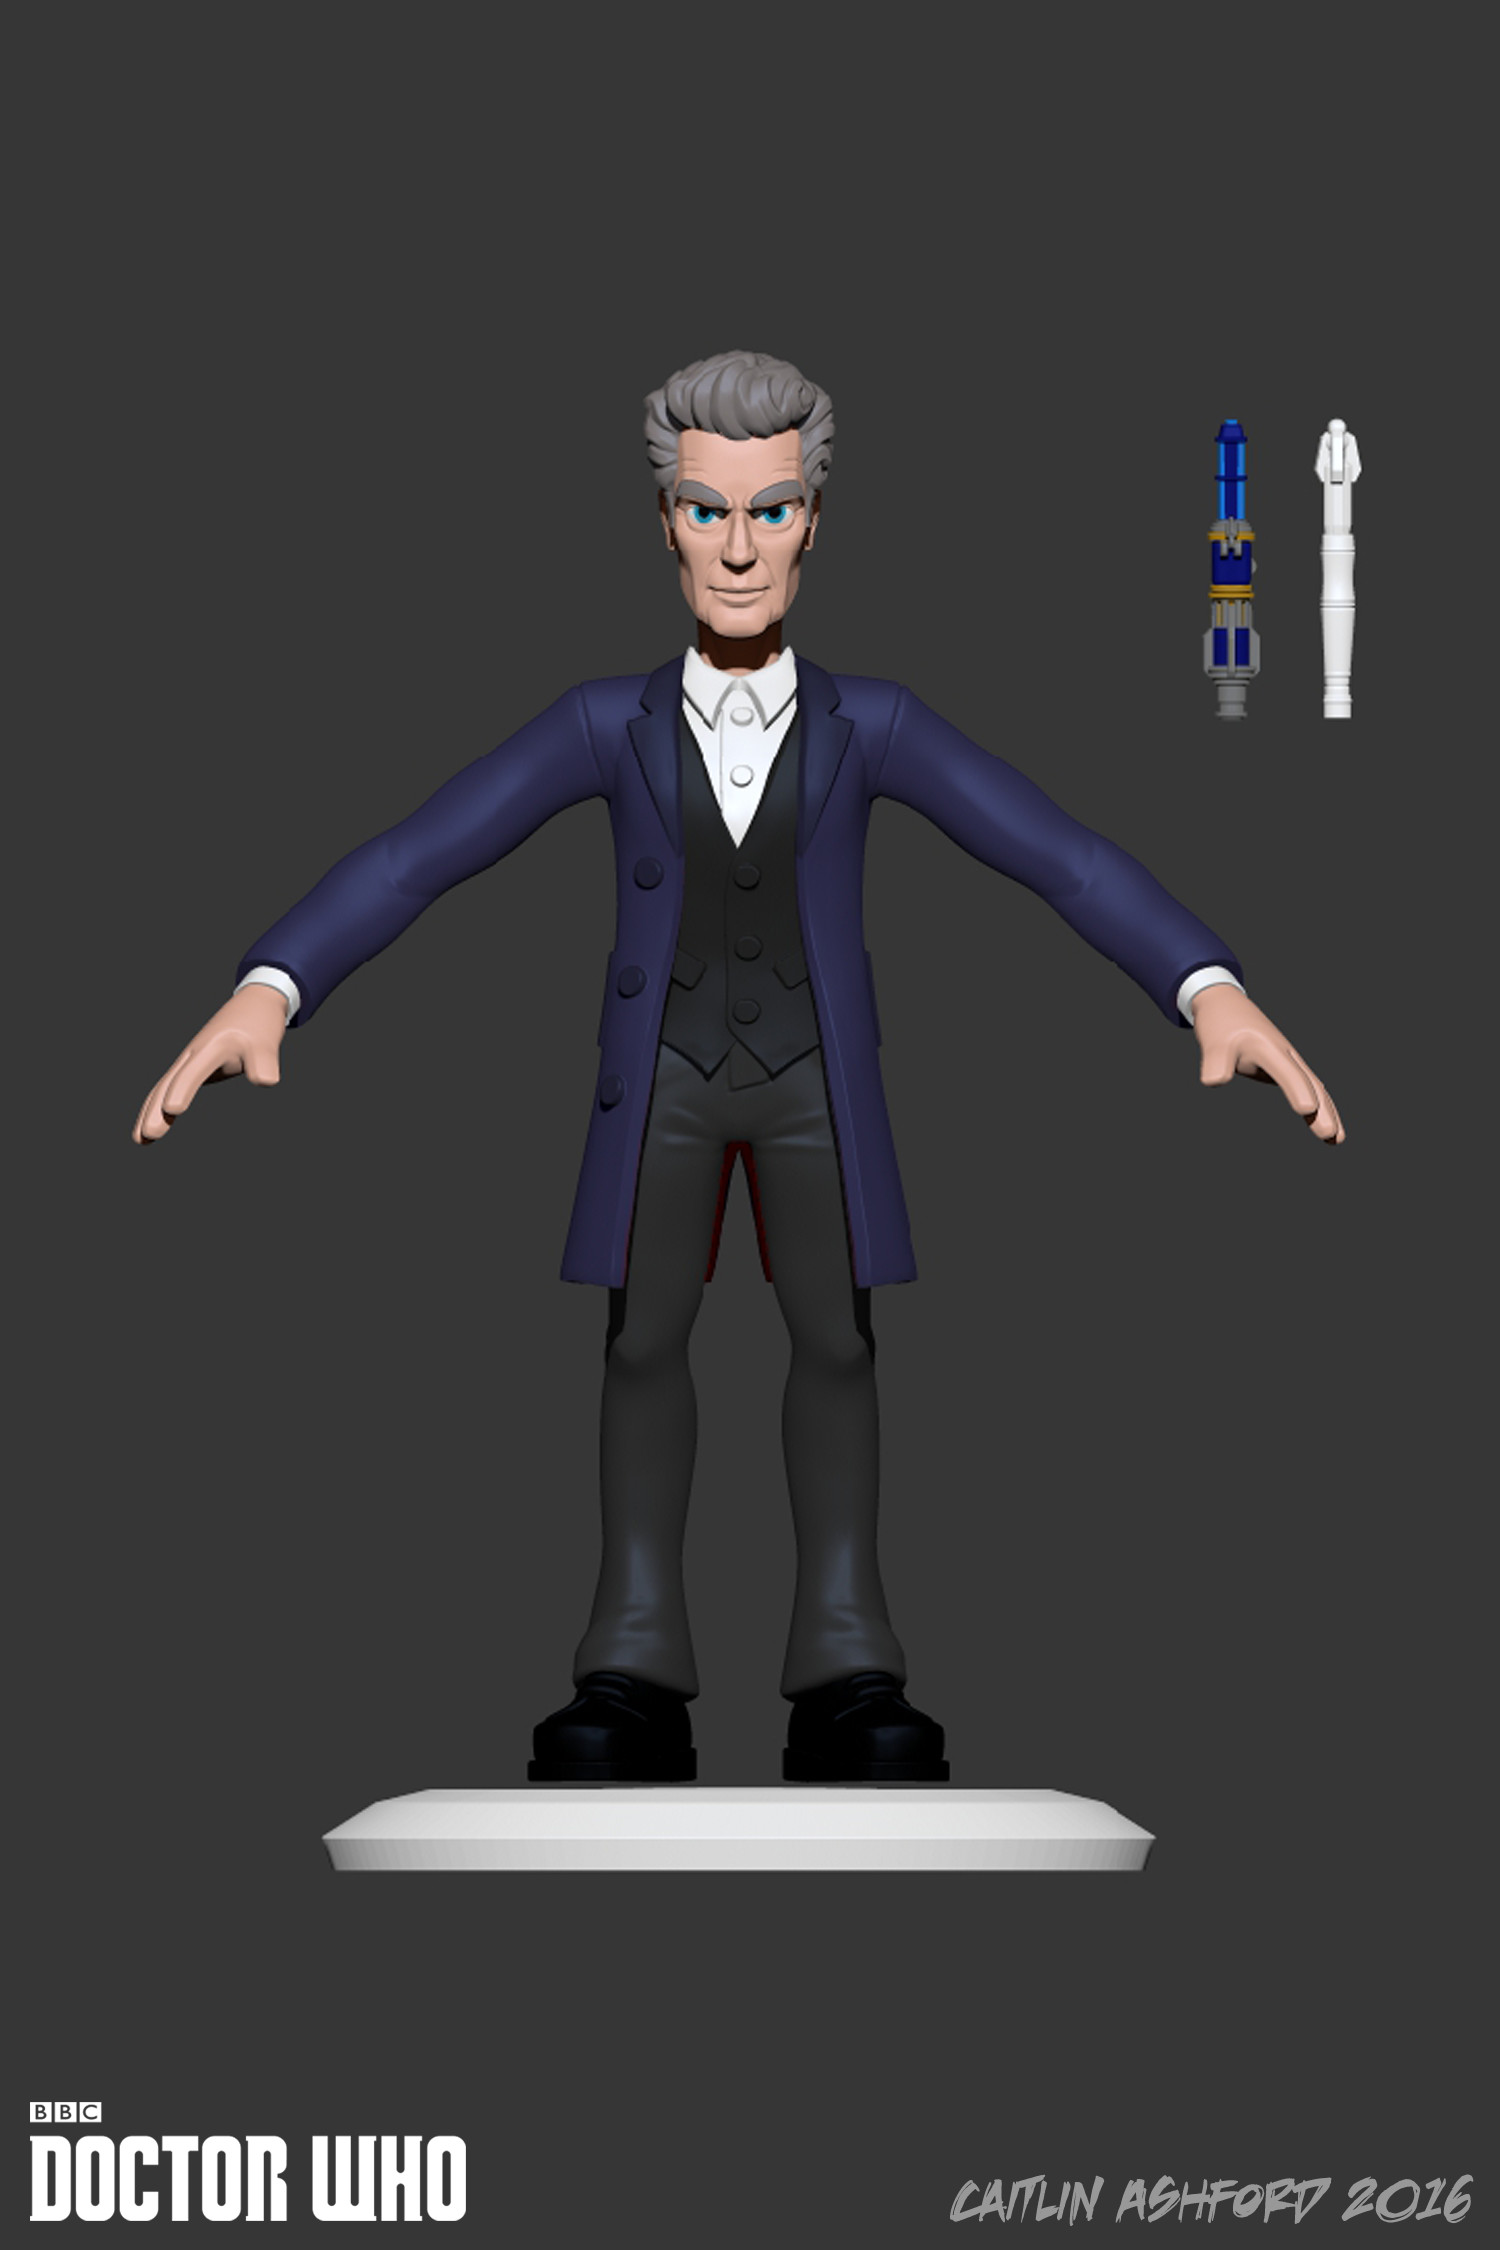 Caitlin ashford dw the doctor capaldi final tpose1